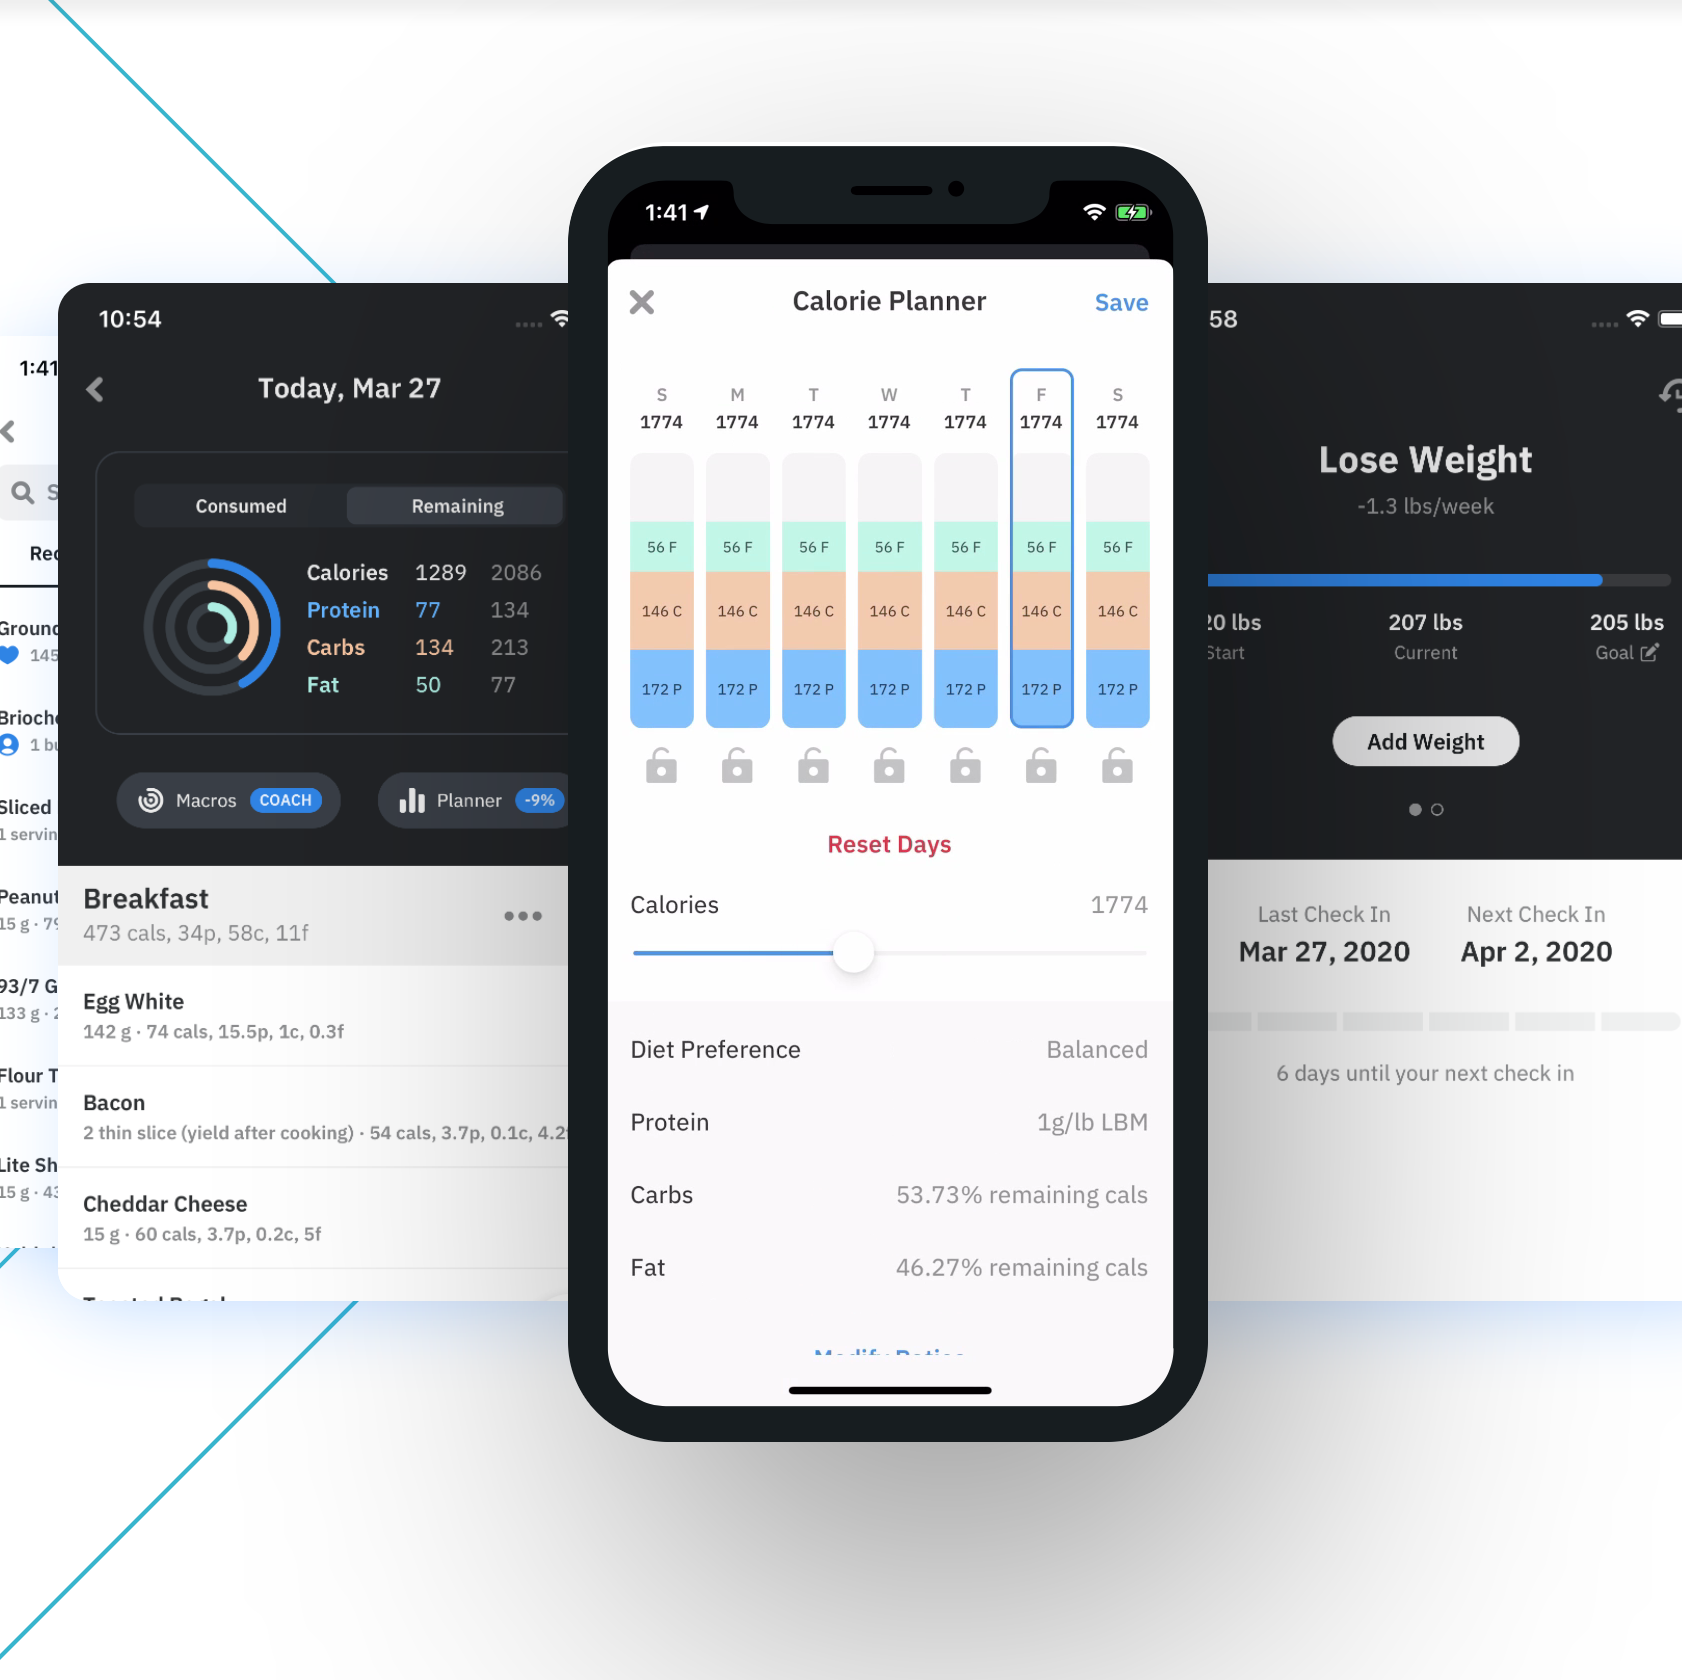 First Look: The Brand New Carbon Diet App